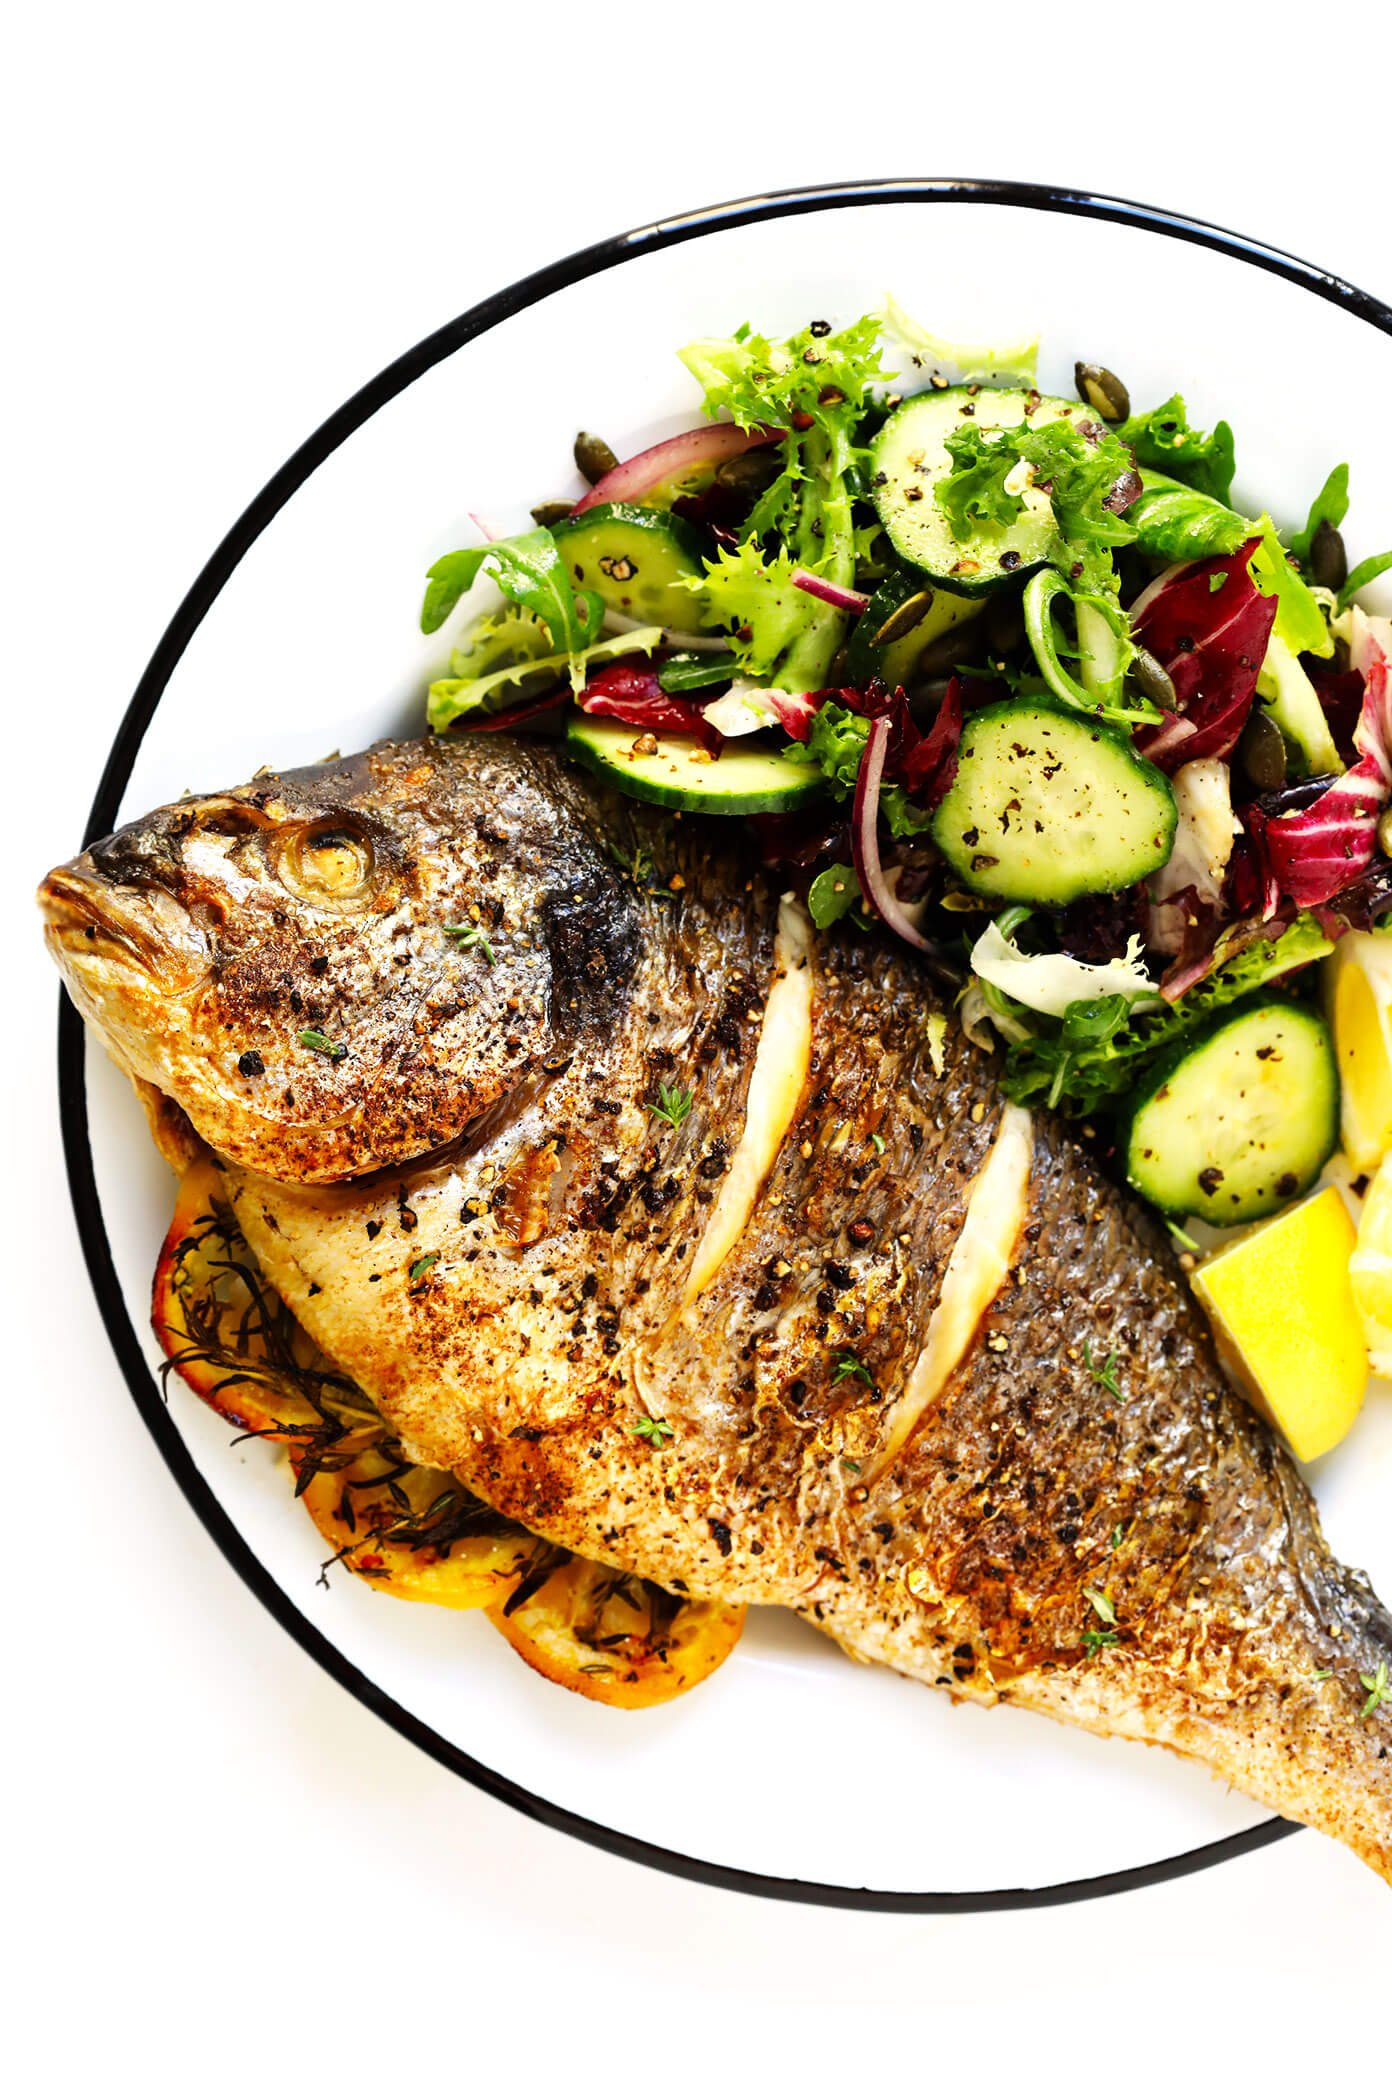 How To Roast Whole Fish In The Oven